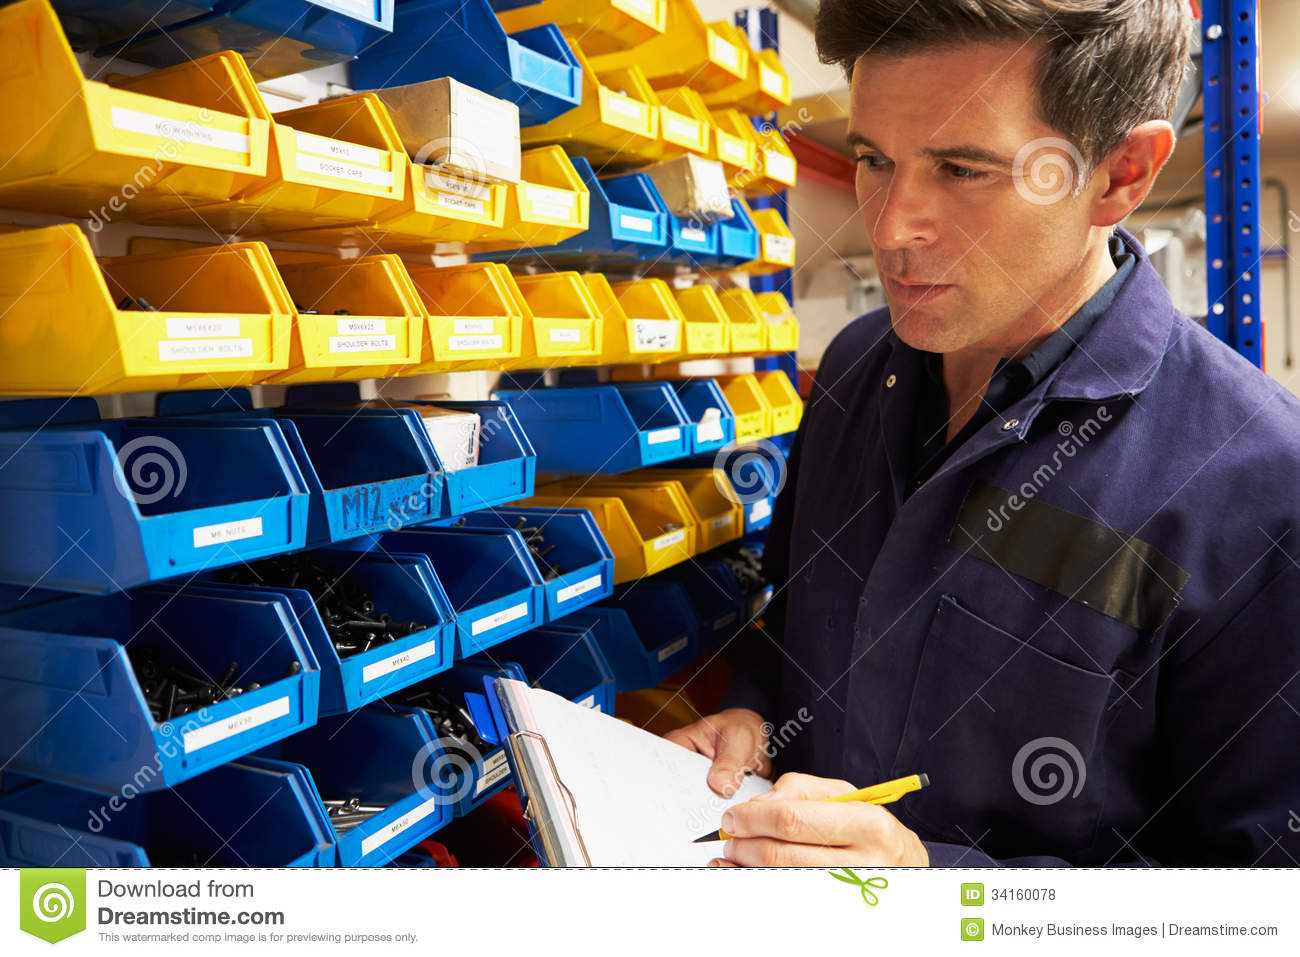 worker checking stock levels in store room stock image image worker checking stock levels in store room royalty stock photos